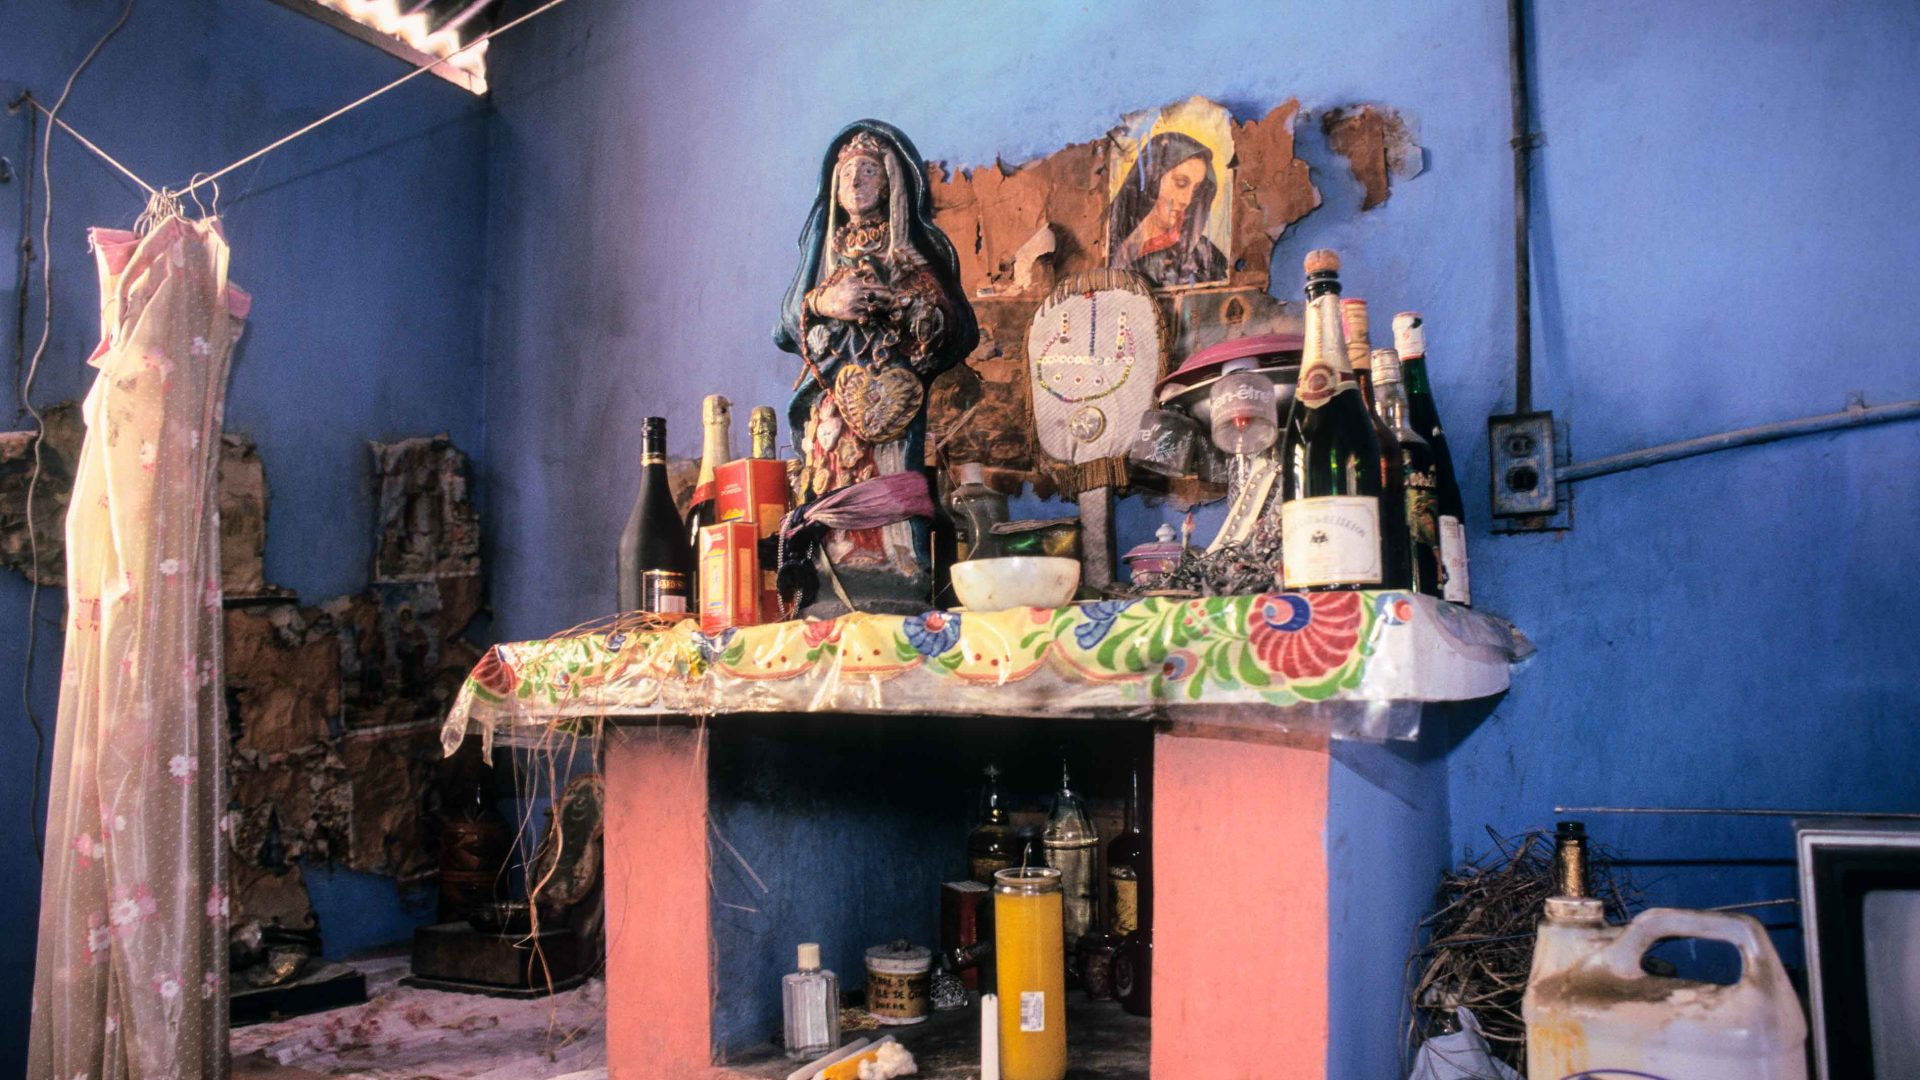 Altar for Ezili Freda and La Siren at the temple of Andre Pierre, Vodou Priest and artist, Pont Rouge, Haiti.